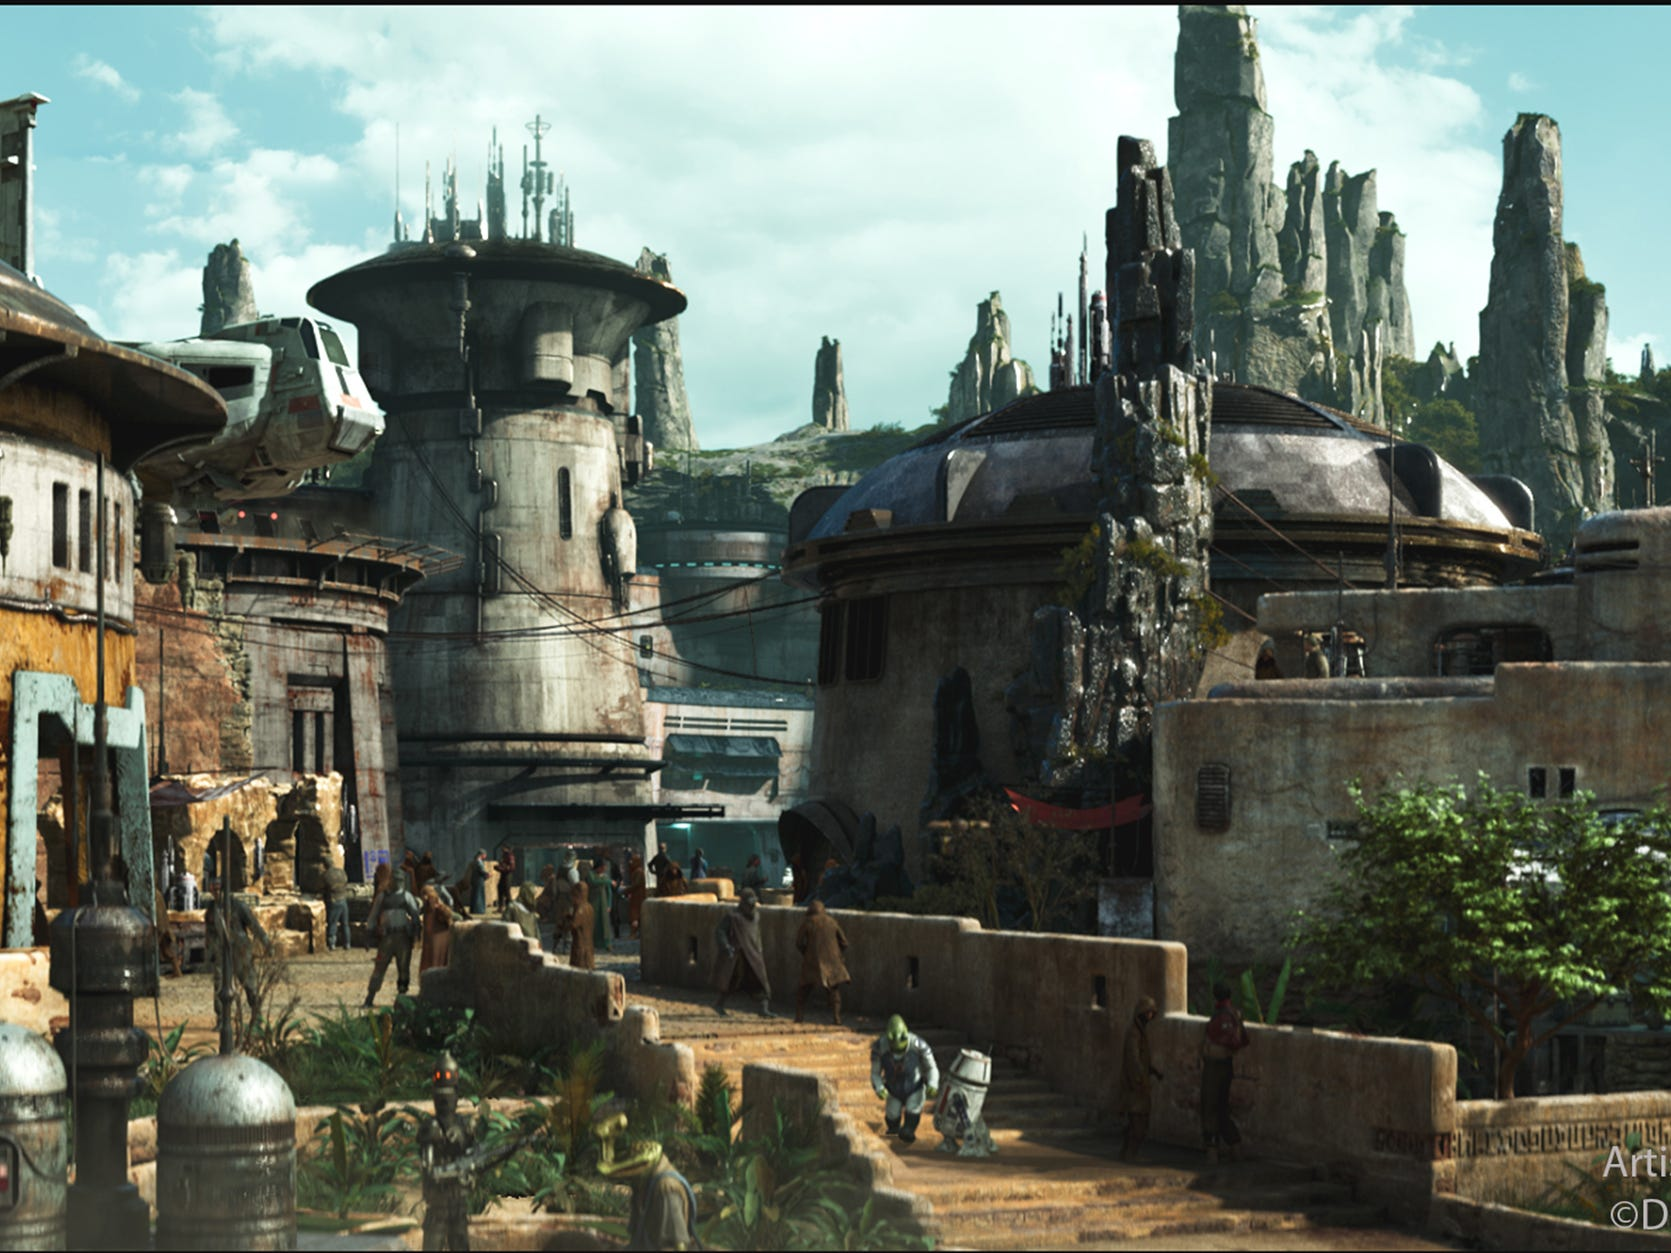 Star Wars: Galaxy's Edge will open in May 31, 2019 at Disneyland. At 14 acres each, it will be Disney's largest single-themed land expansion ever.